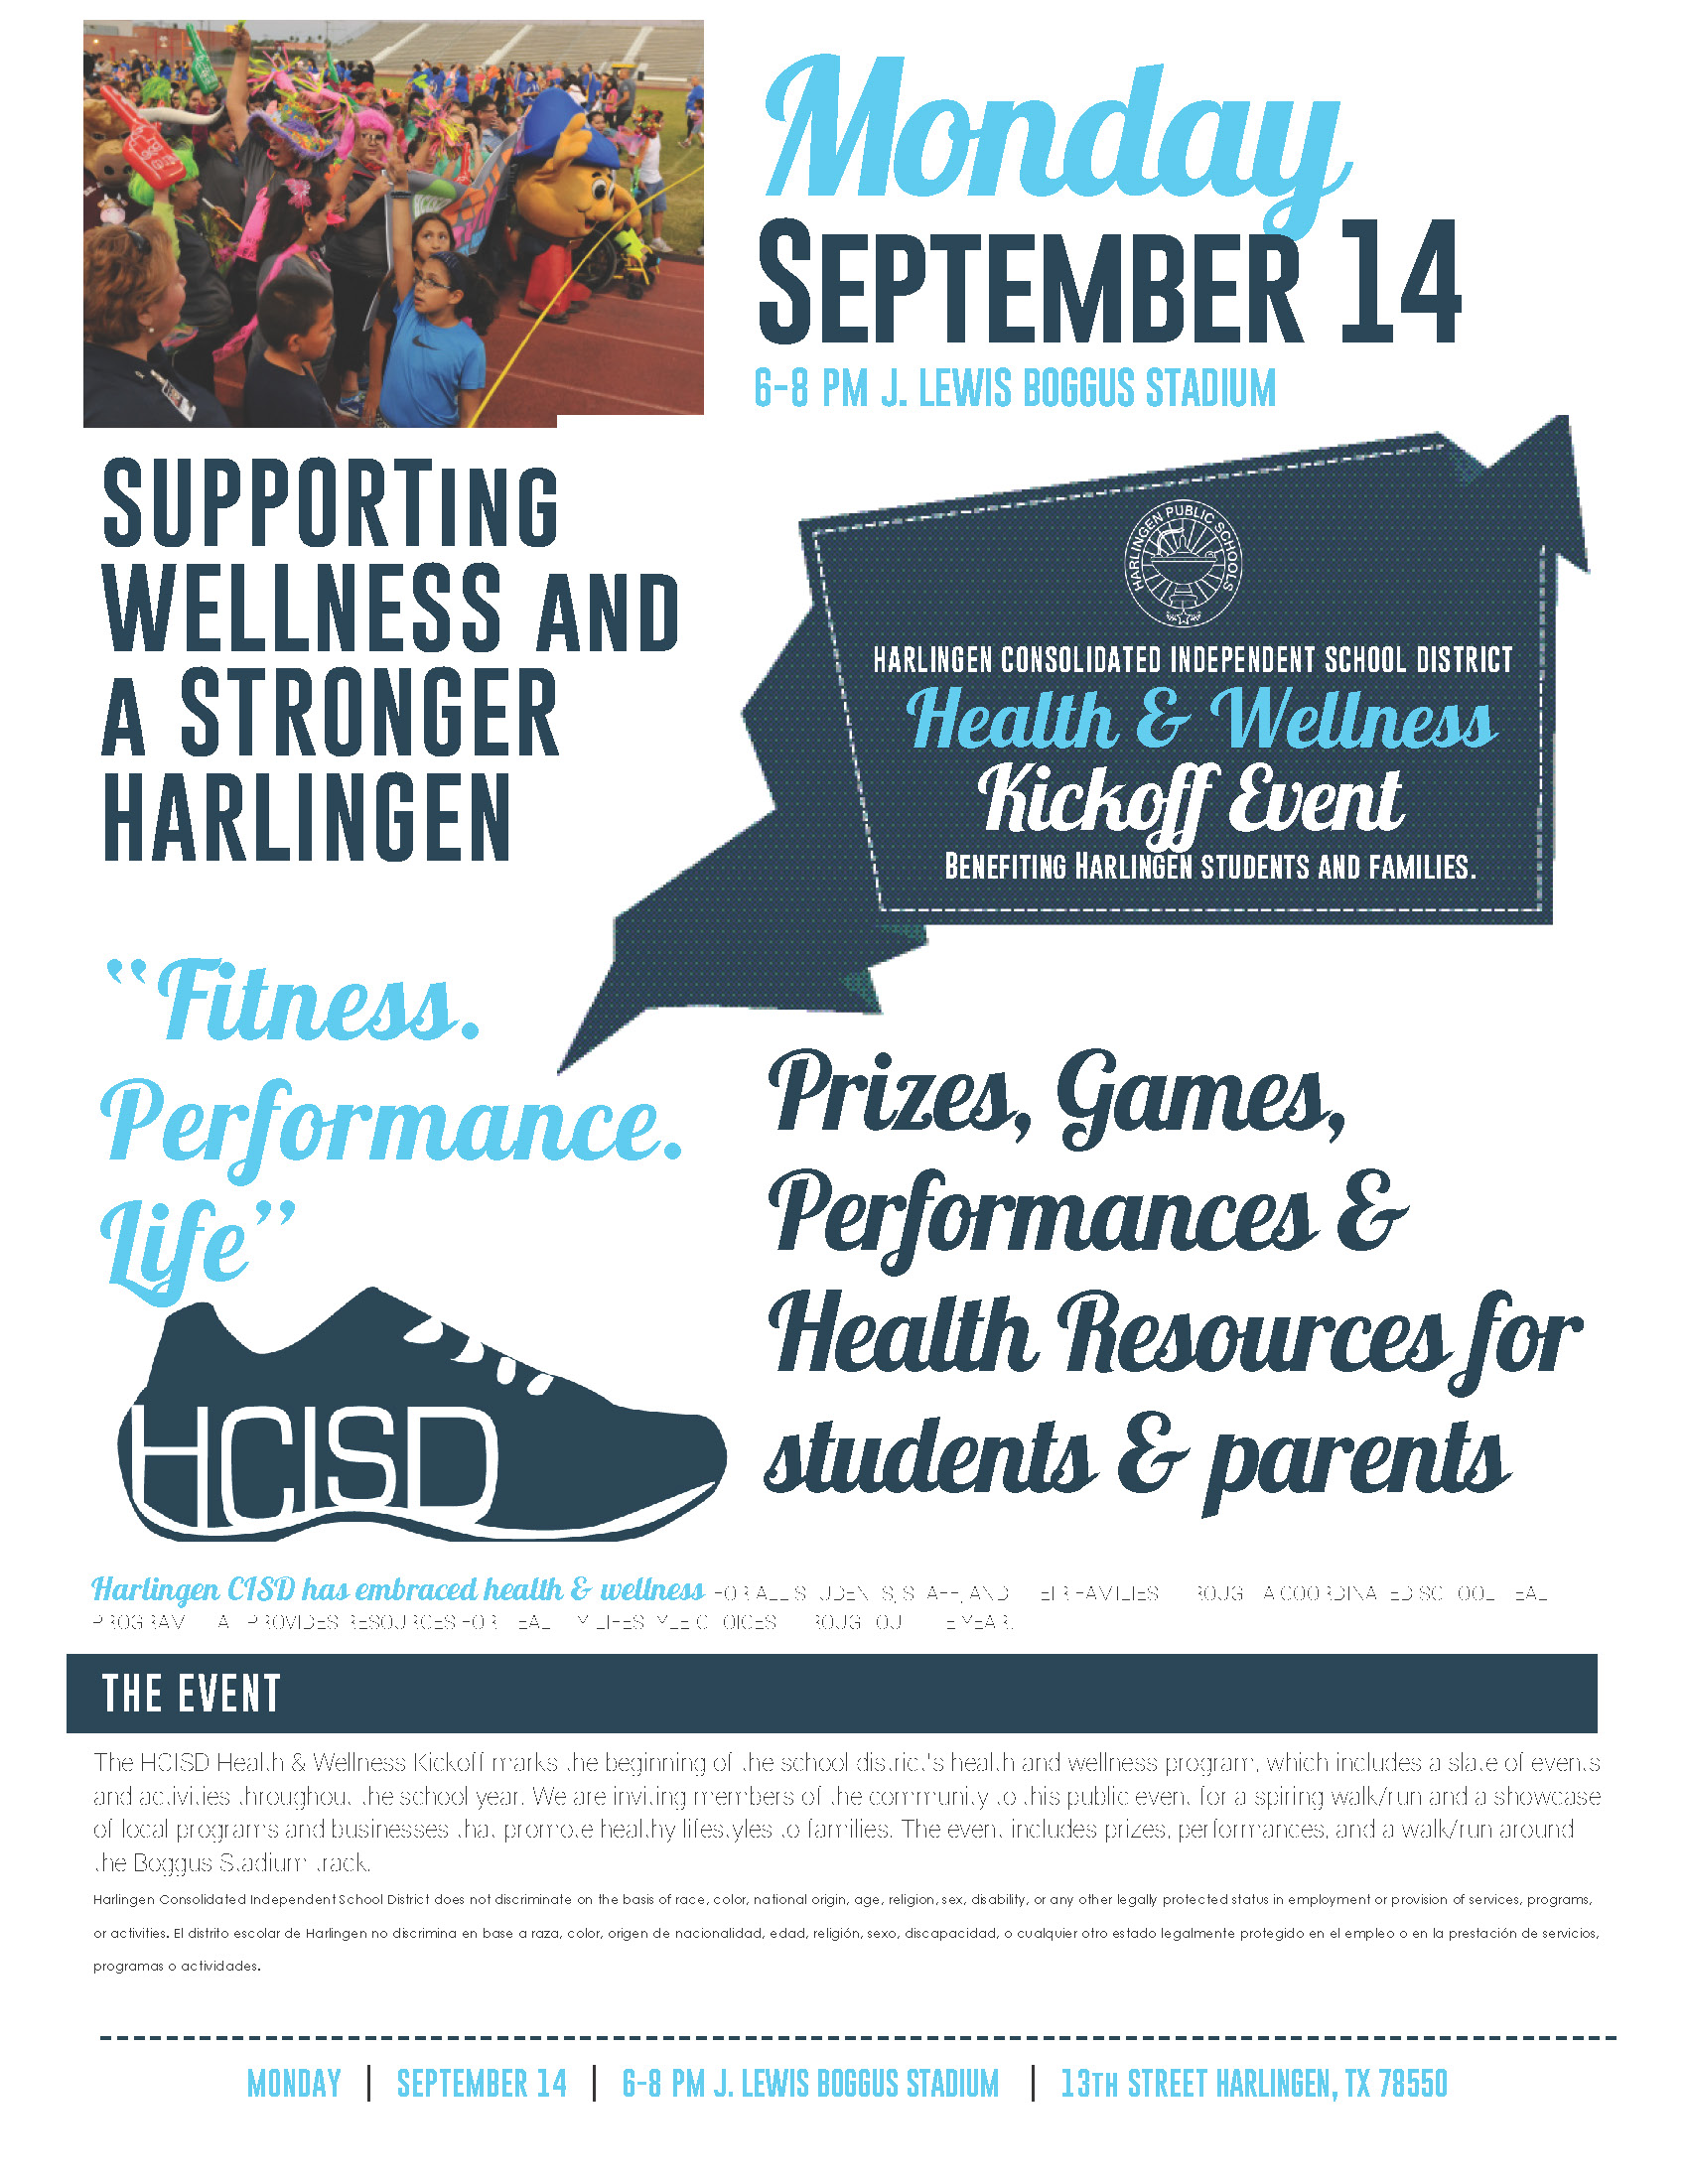 HCISD hosts annual Wellness Walk on Sept. 14